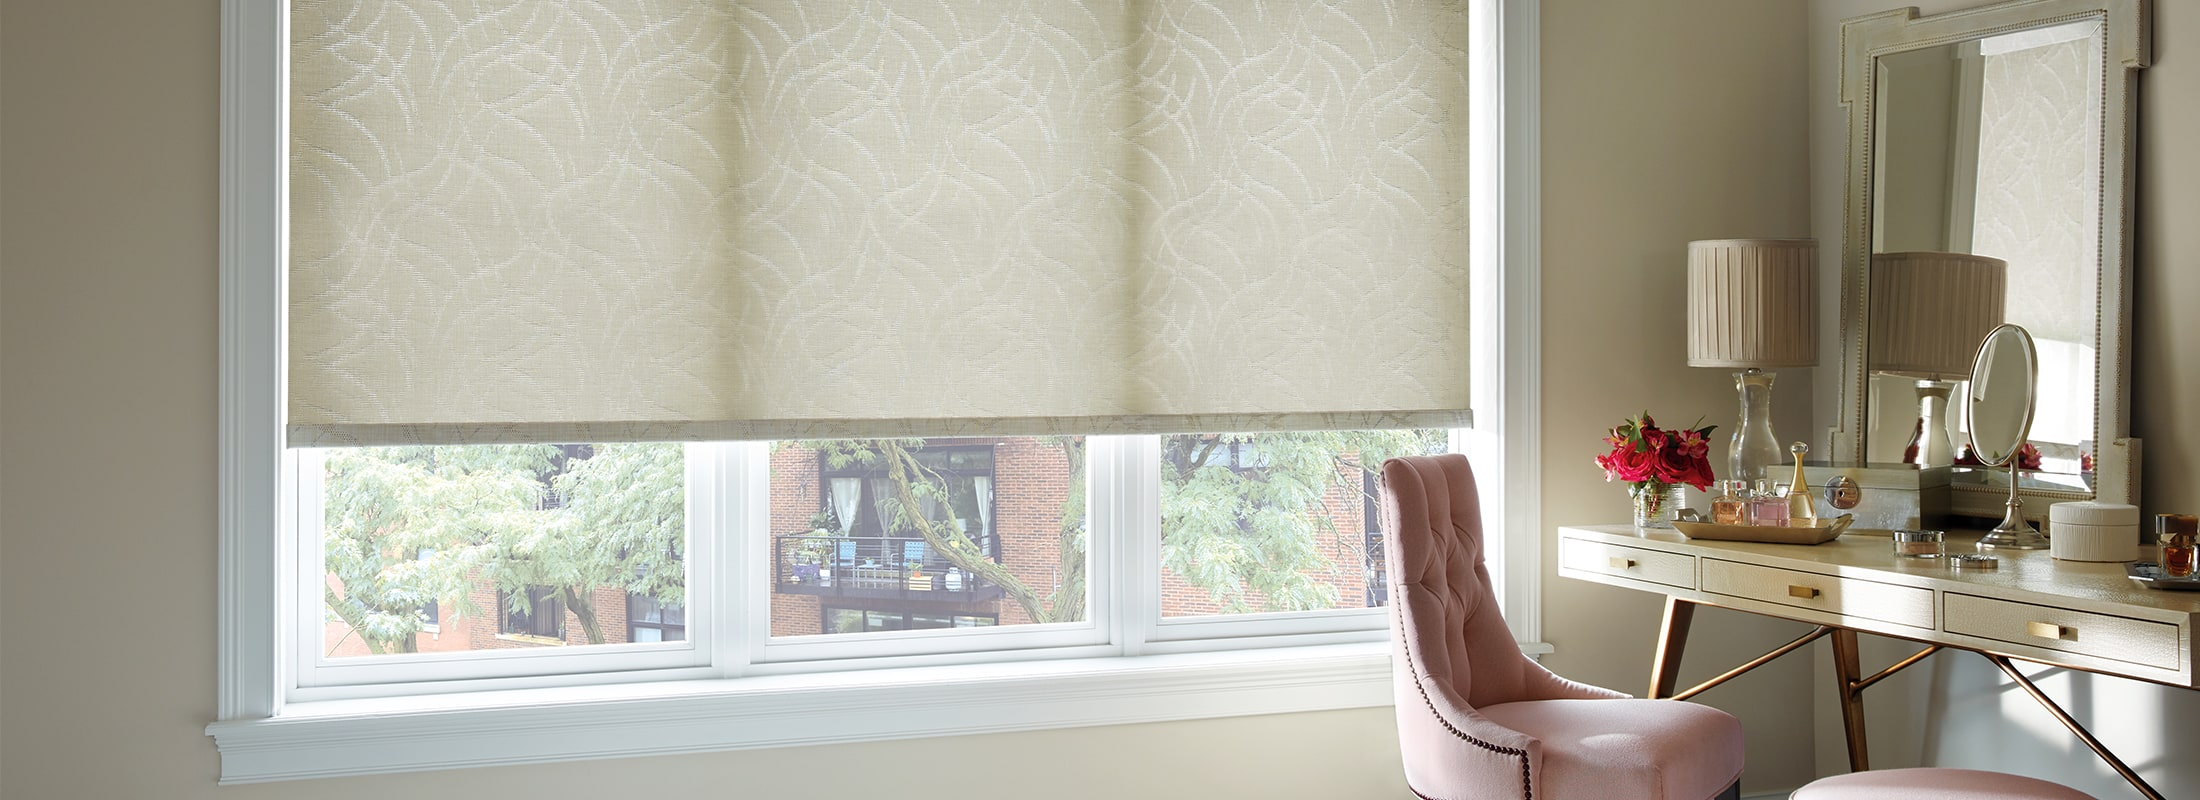 woven fabric window shades